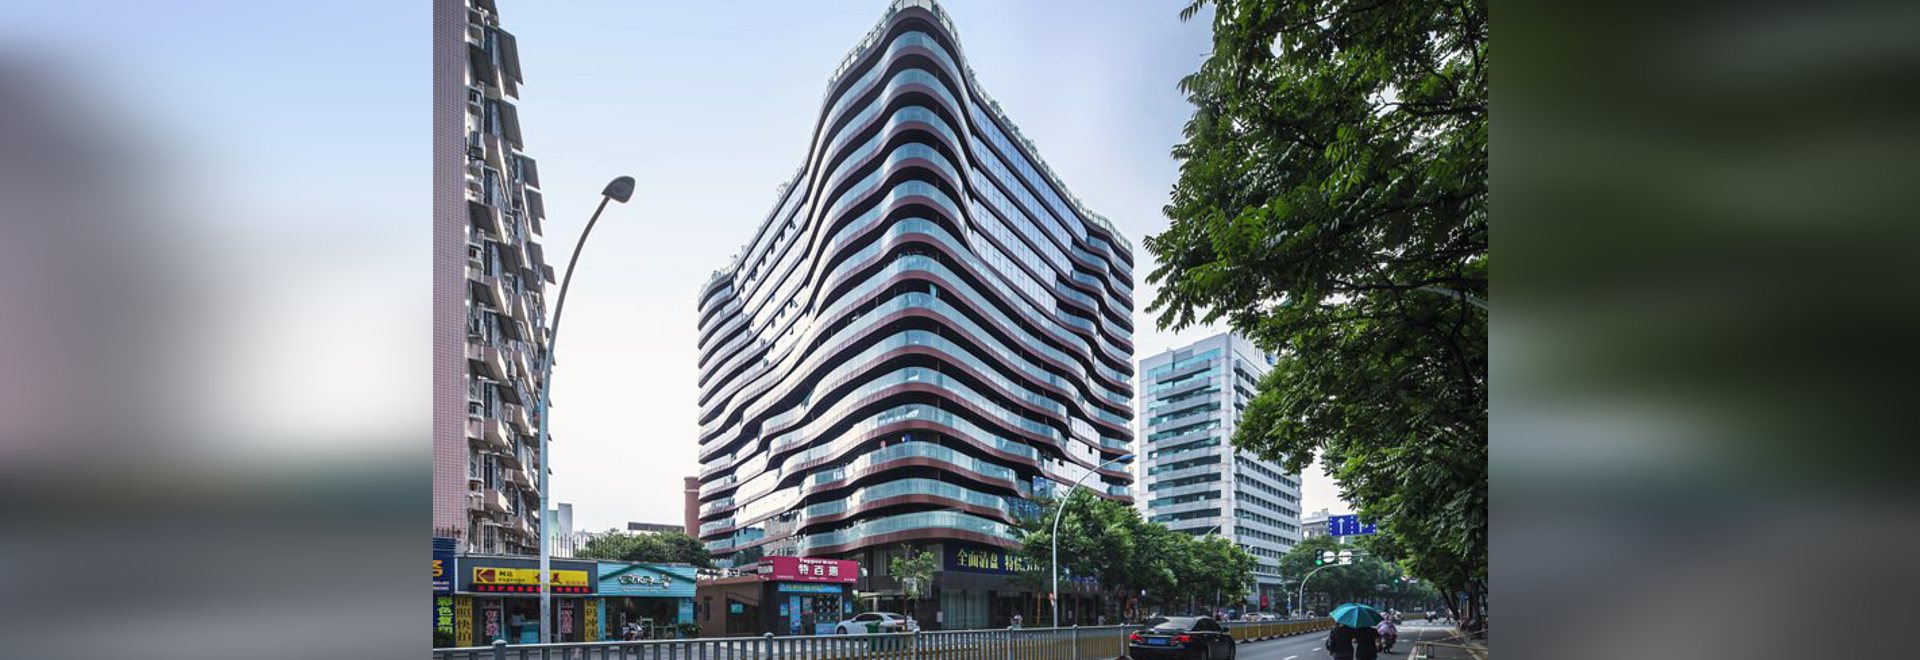 Fuzhou Shouxi building